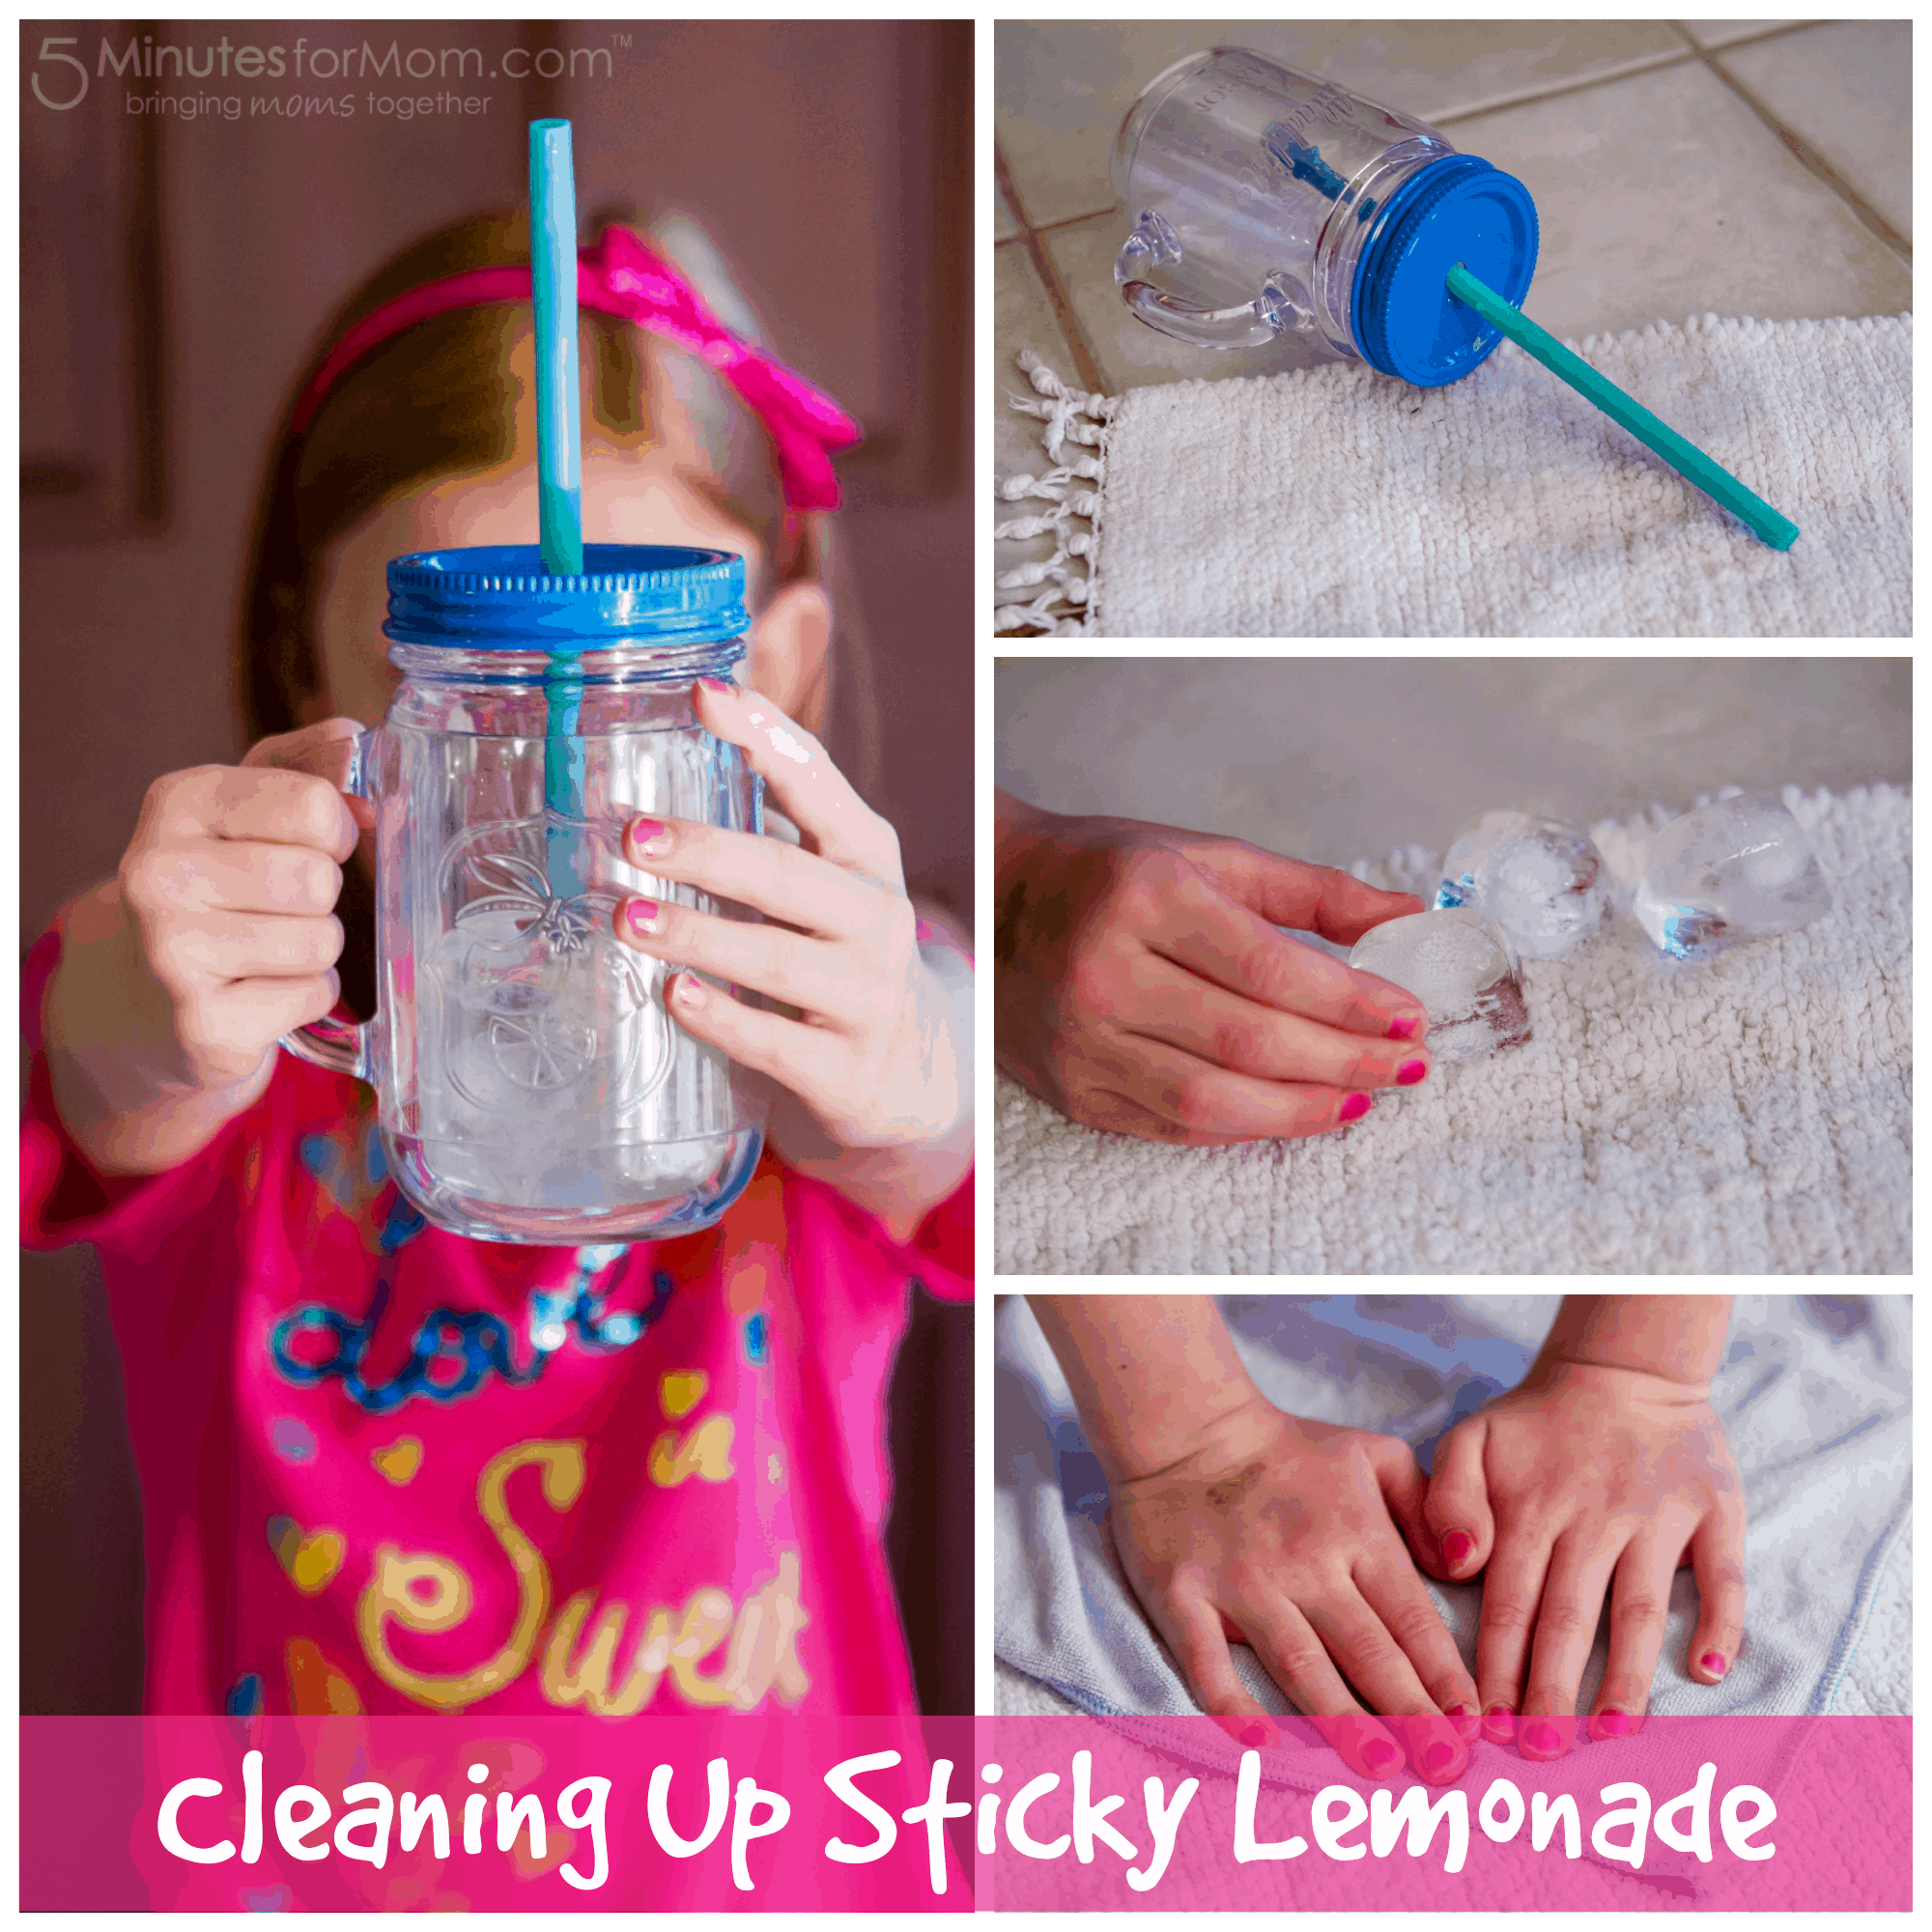 Cleaning Up Sticky Lemonade